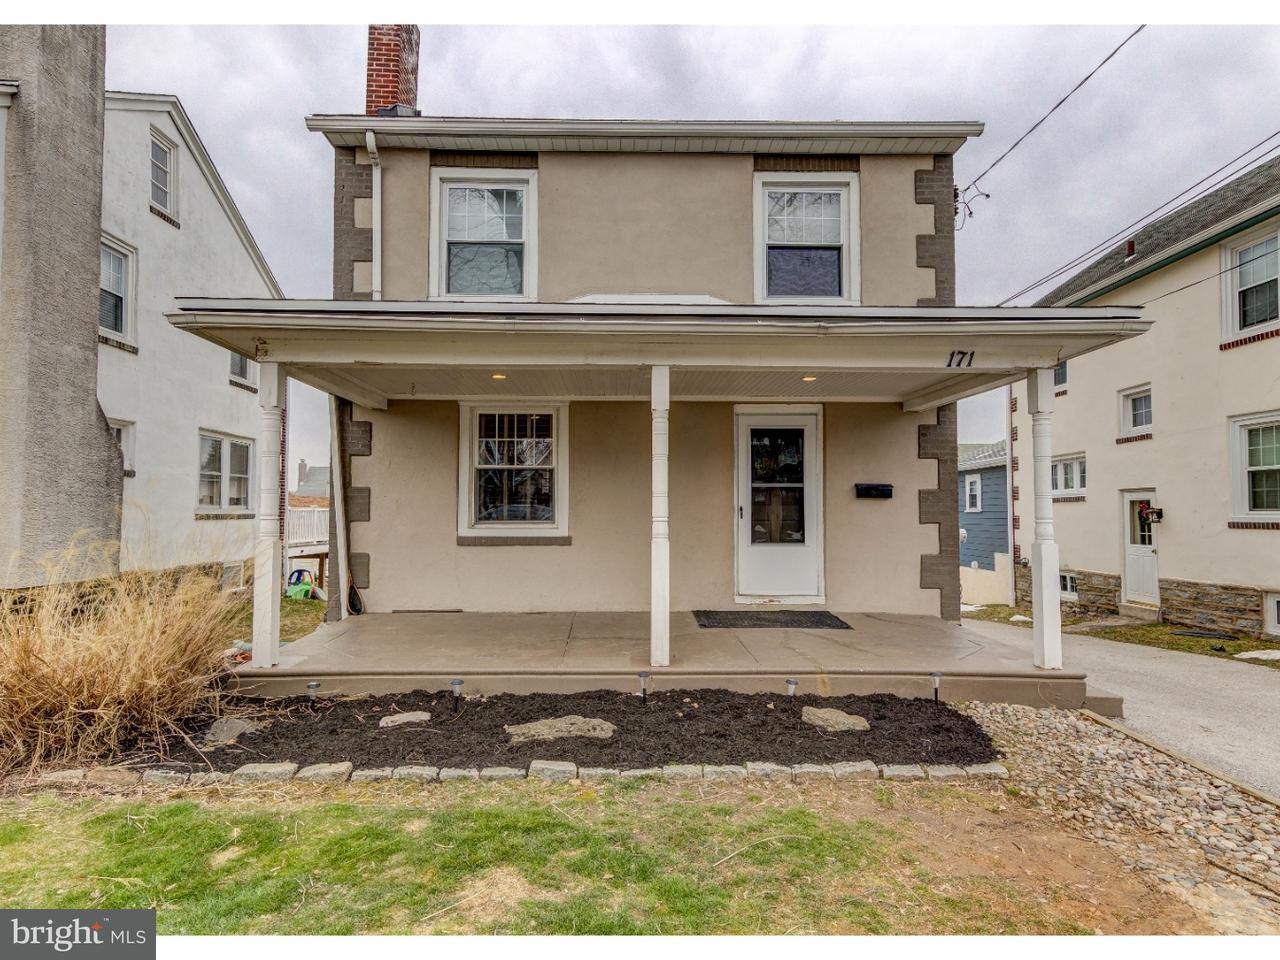 171  Sycamore Road Havertown, PA 19083